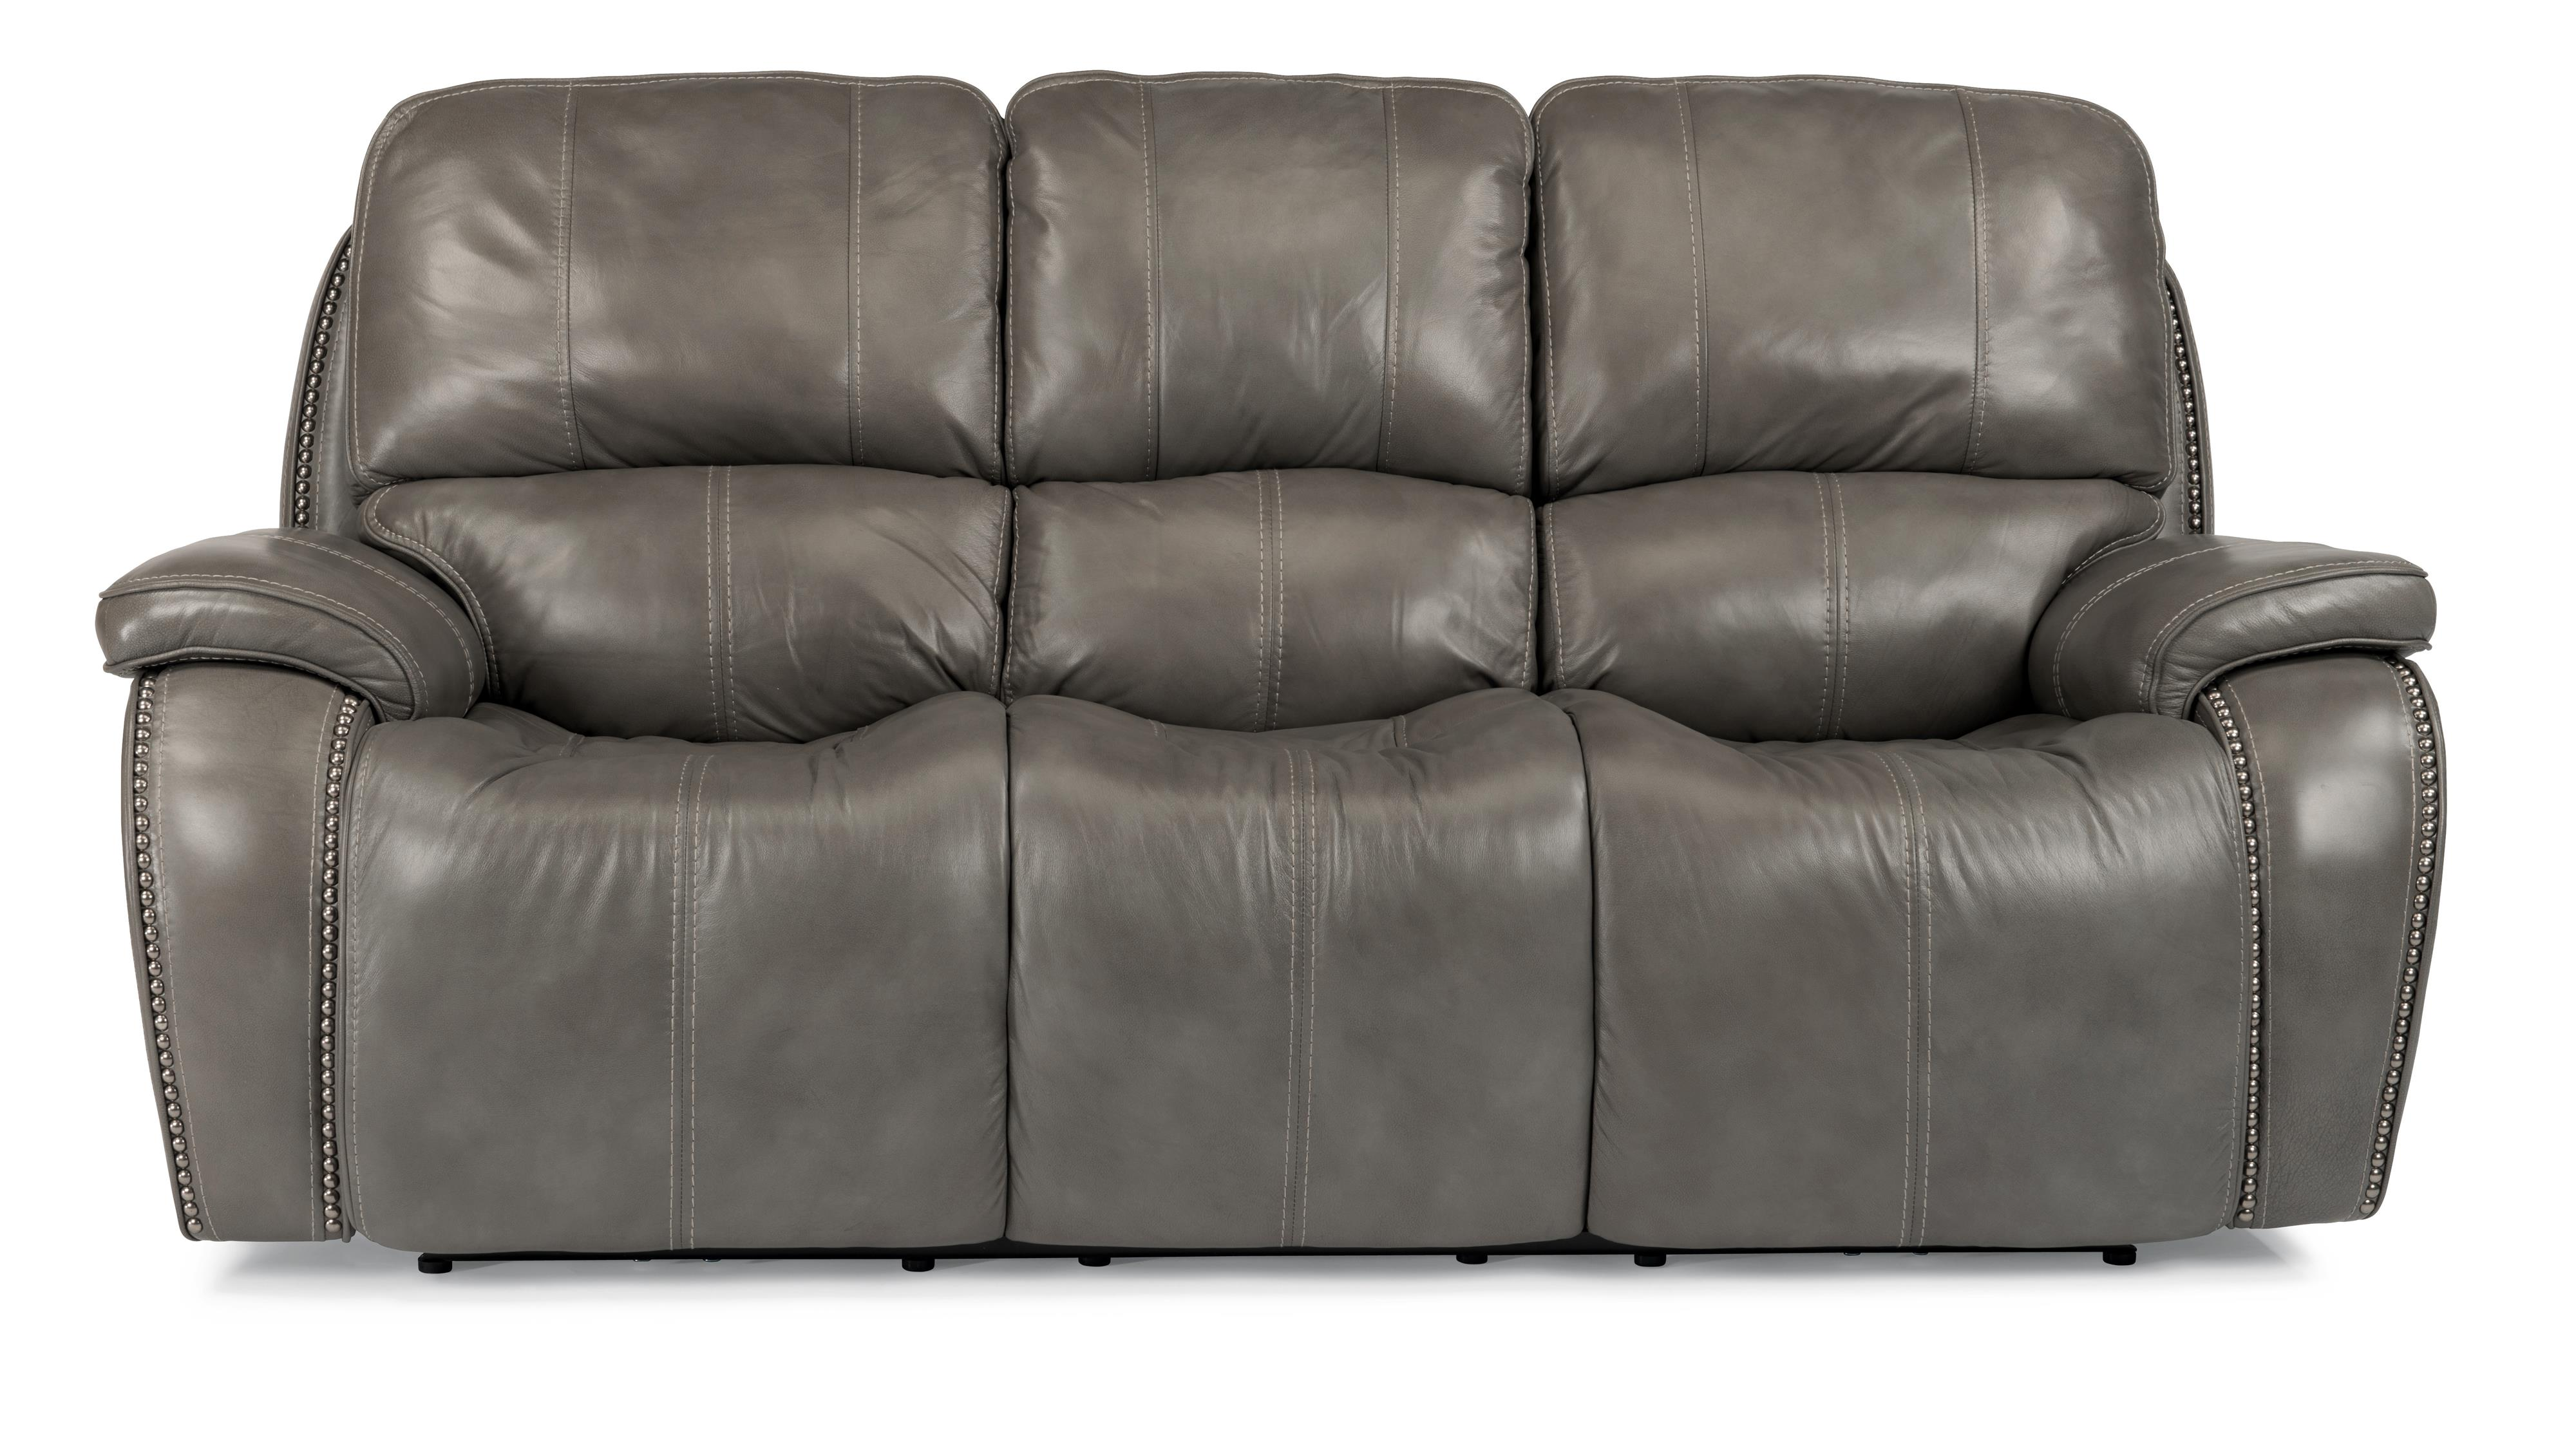 Power Reclining Sofa with Nailheads and USB Charging Ports by